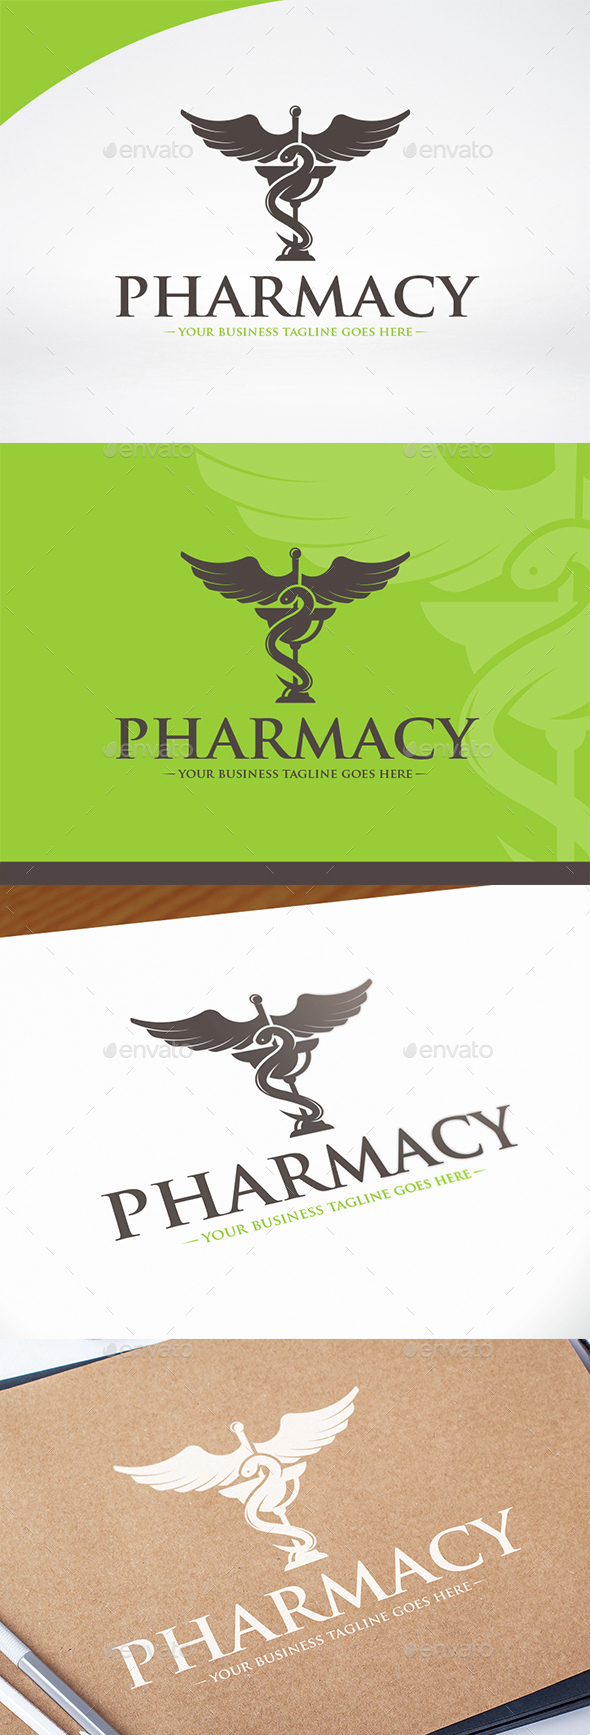 Pharma Graphics, Designs & Templates from GraphicRiver